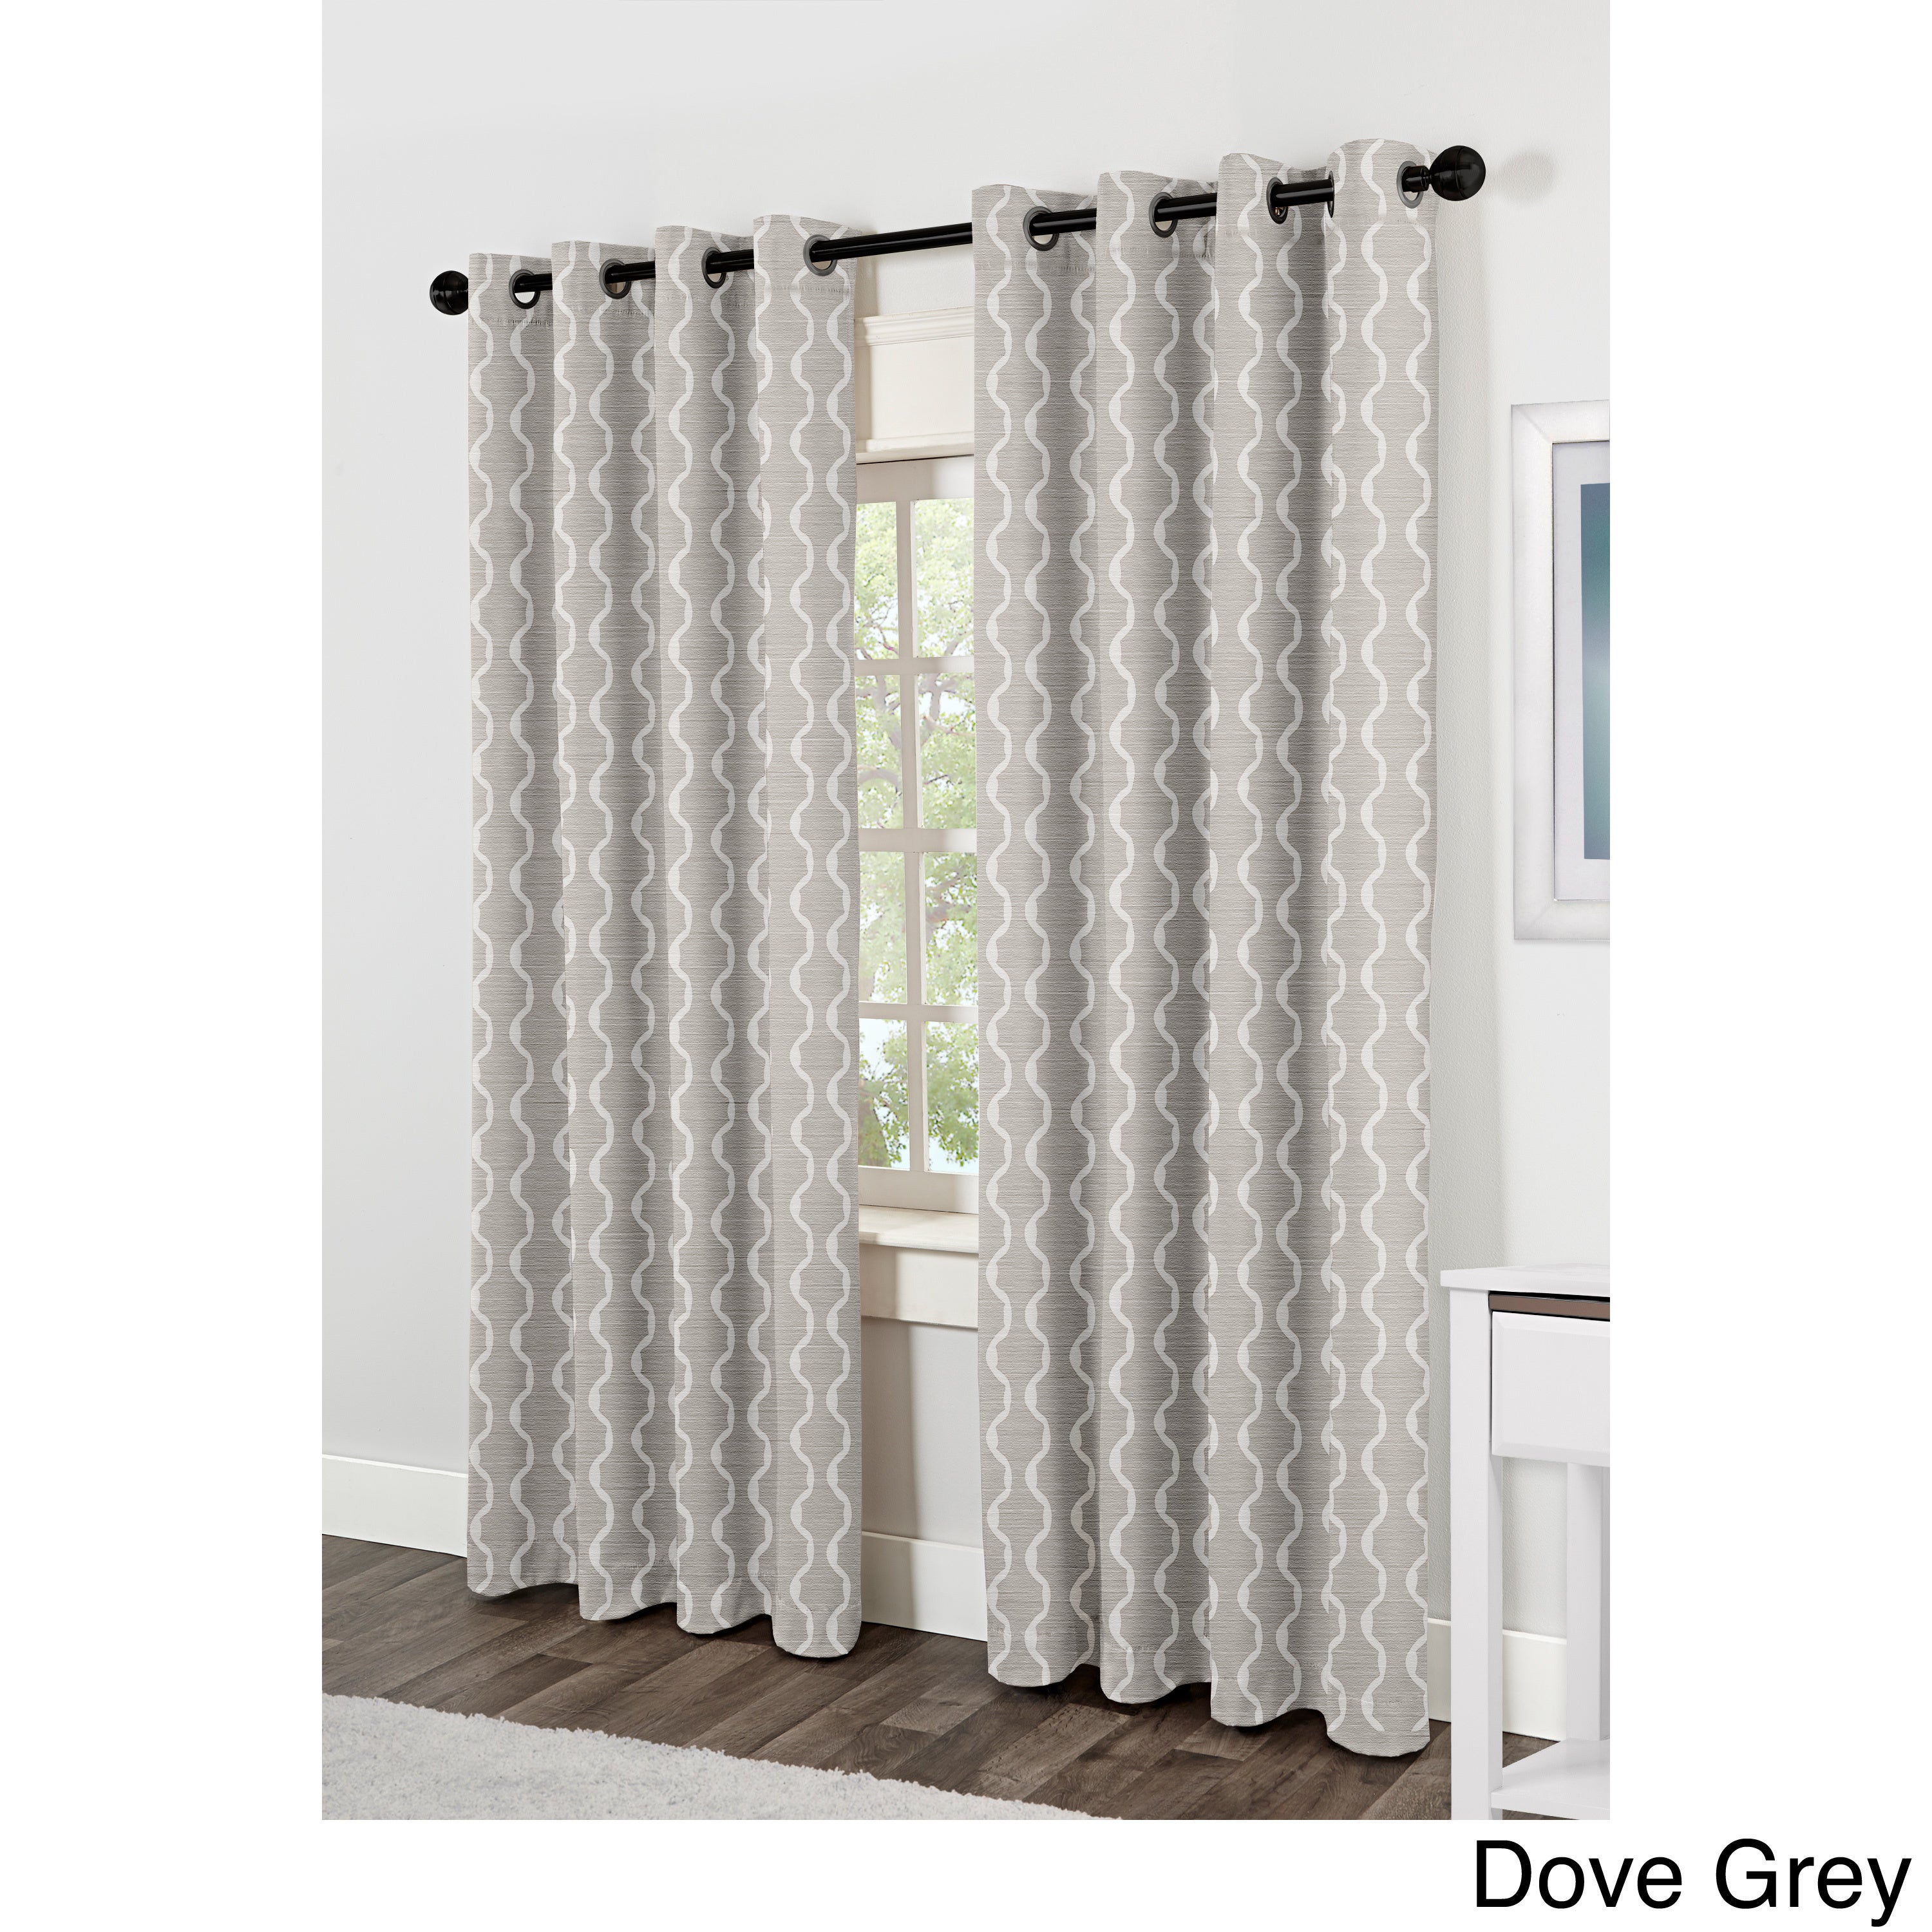 Baroque Grommet Top 84 Inch Curtain Panel Pair Overstock Shopping Great Deals On Curtains